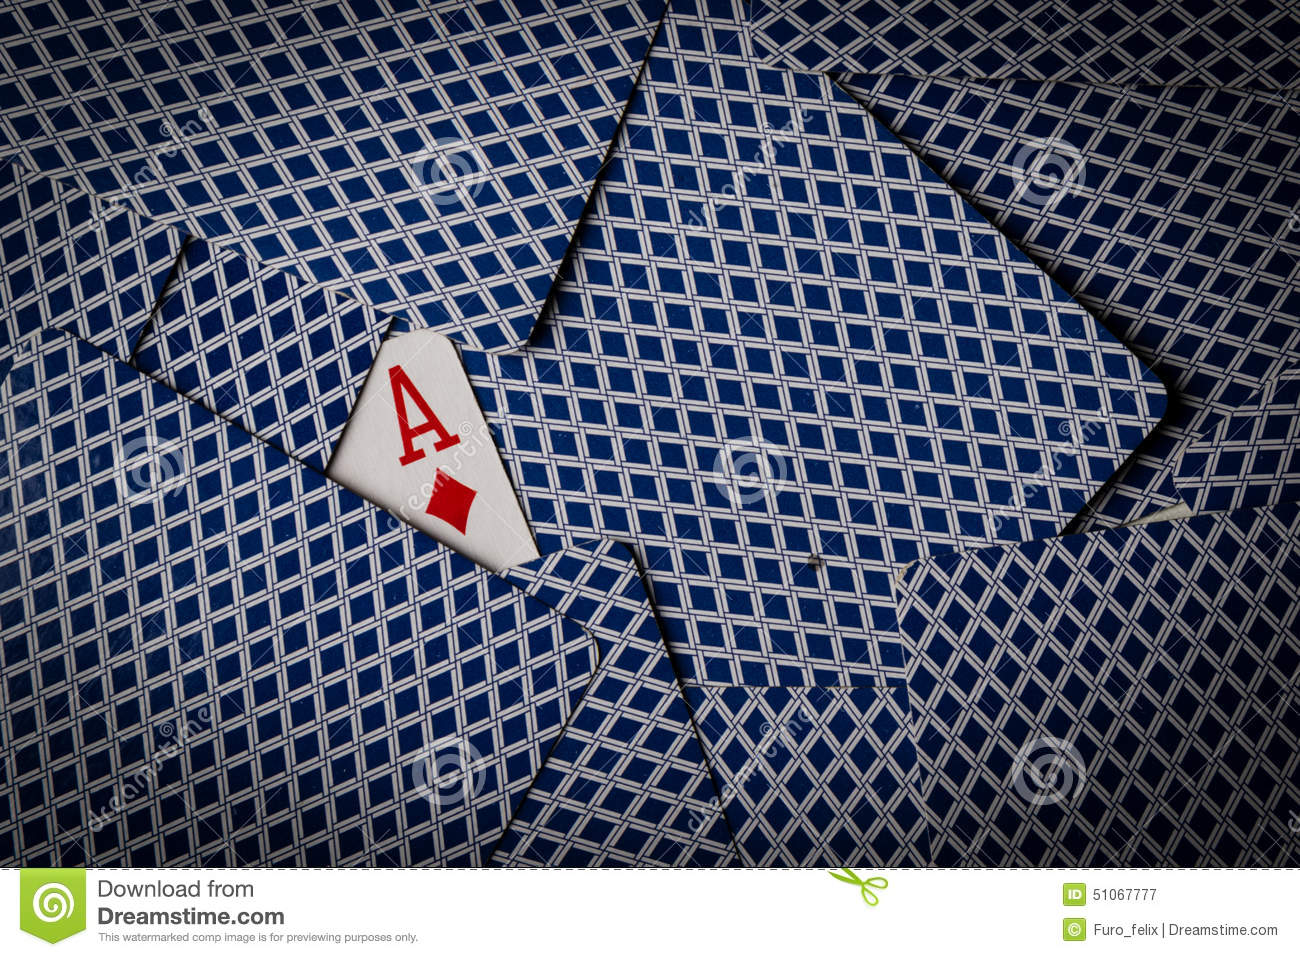 Poker cards with ace of diamonds showing